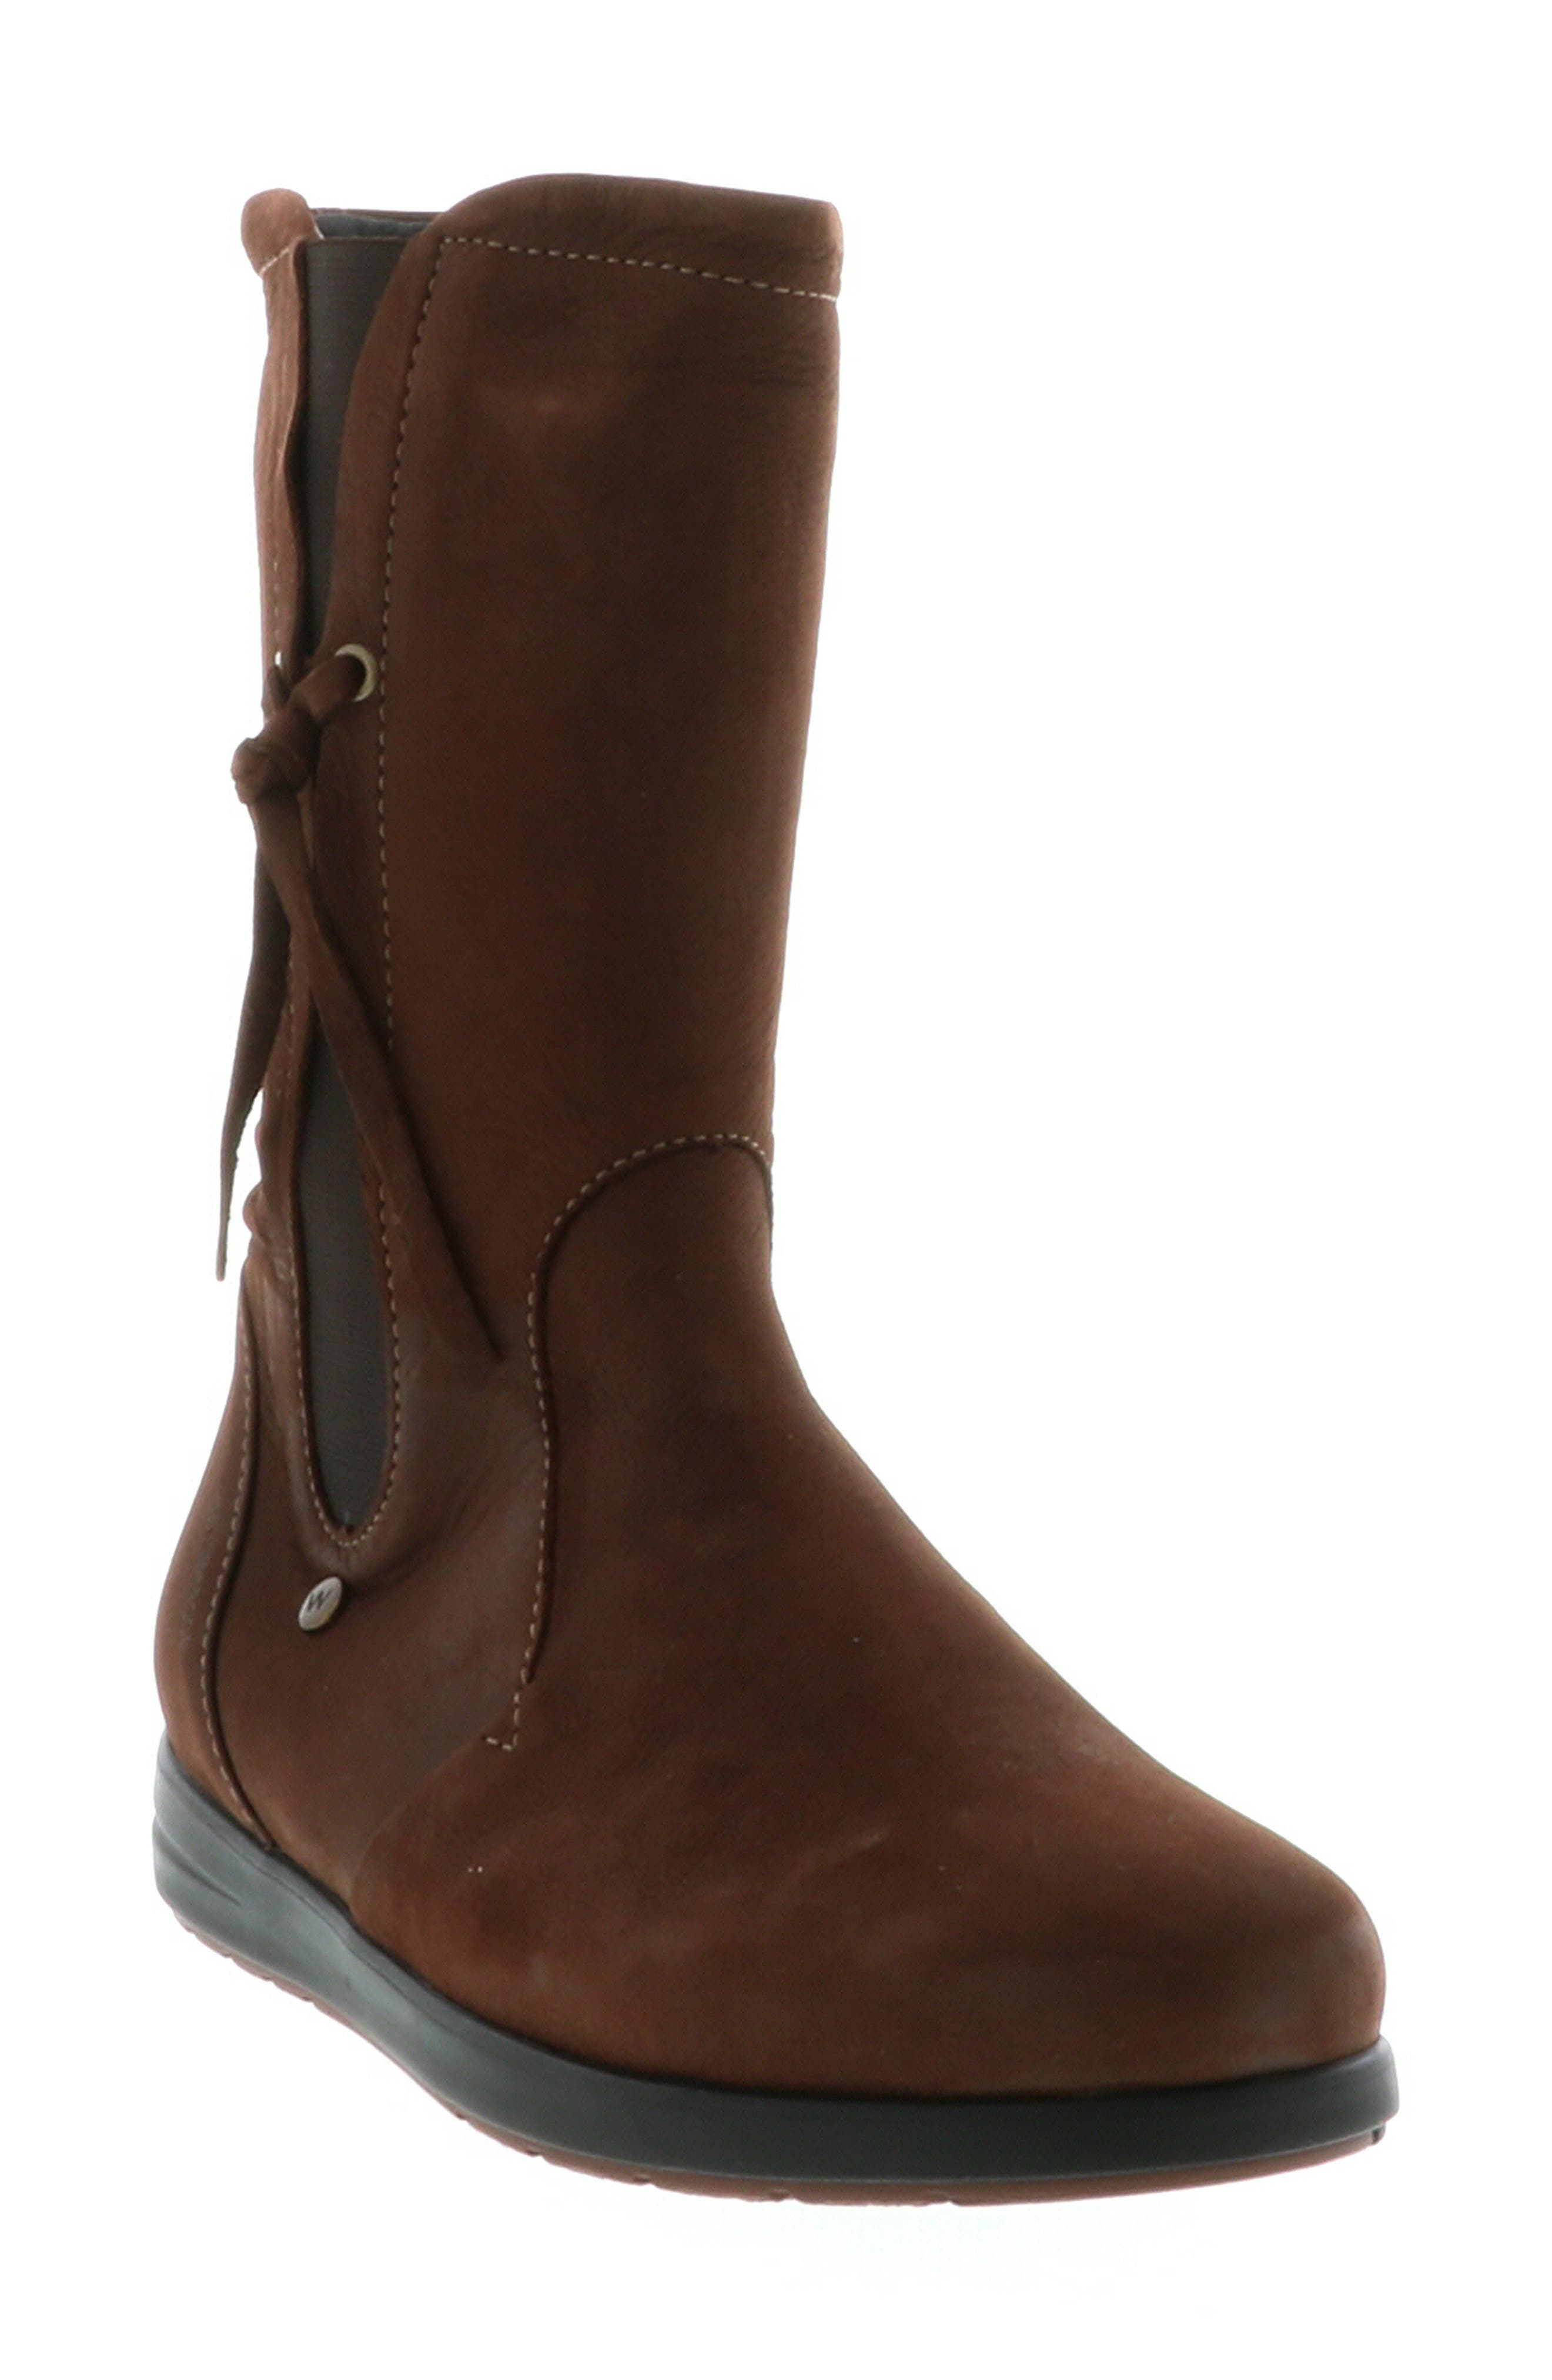 Wolky Newton Waterproof Boot - Brown